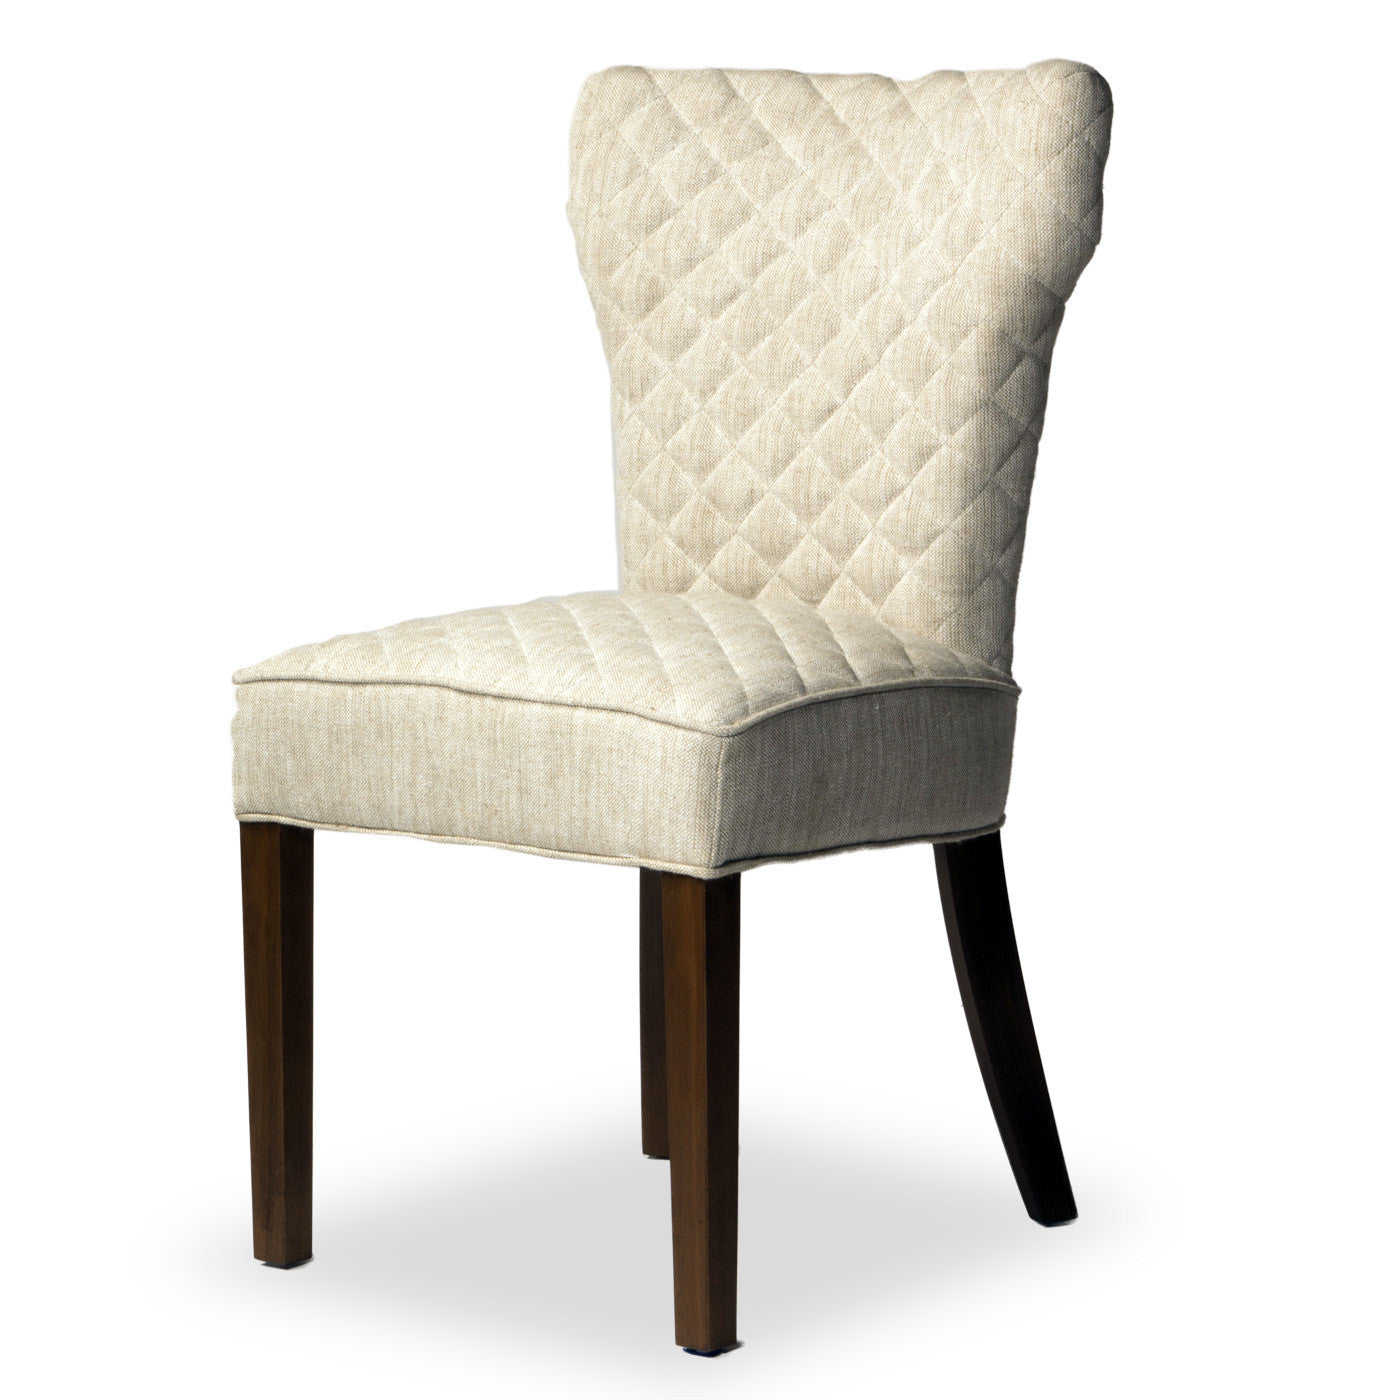 24e design co savannah furniture store savannah interior design hambo side chair